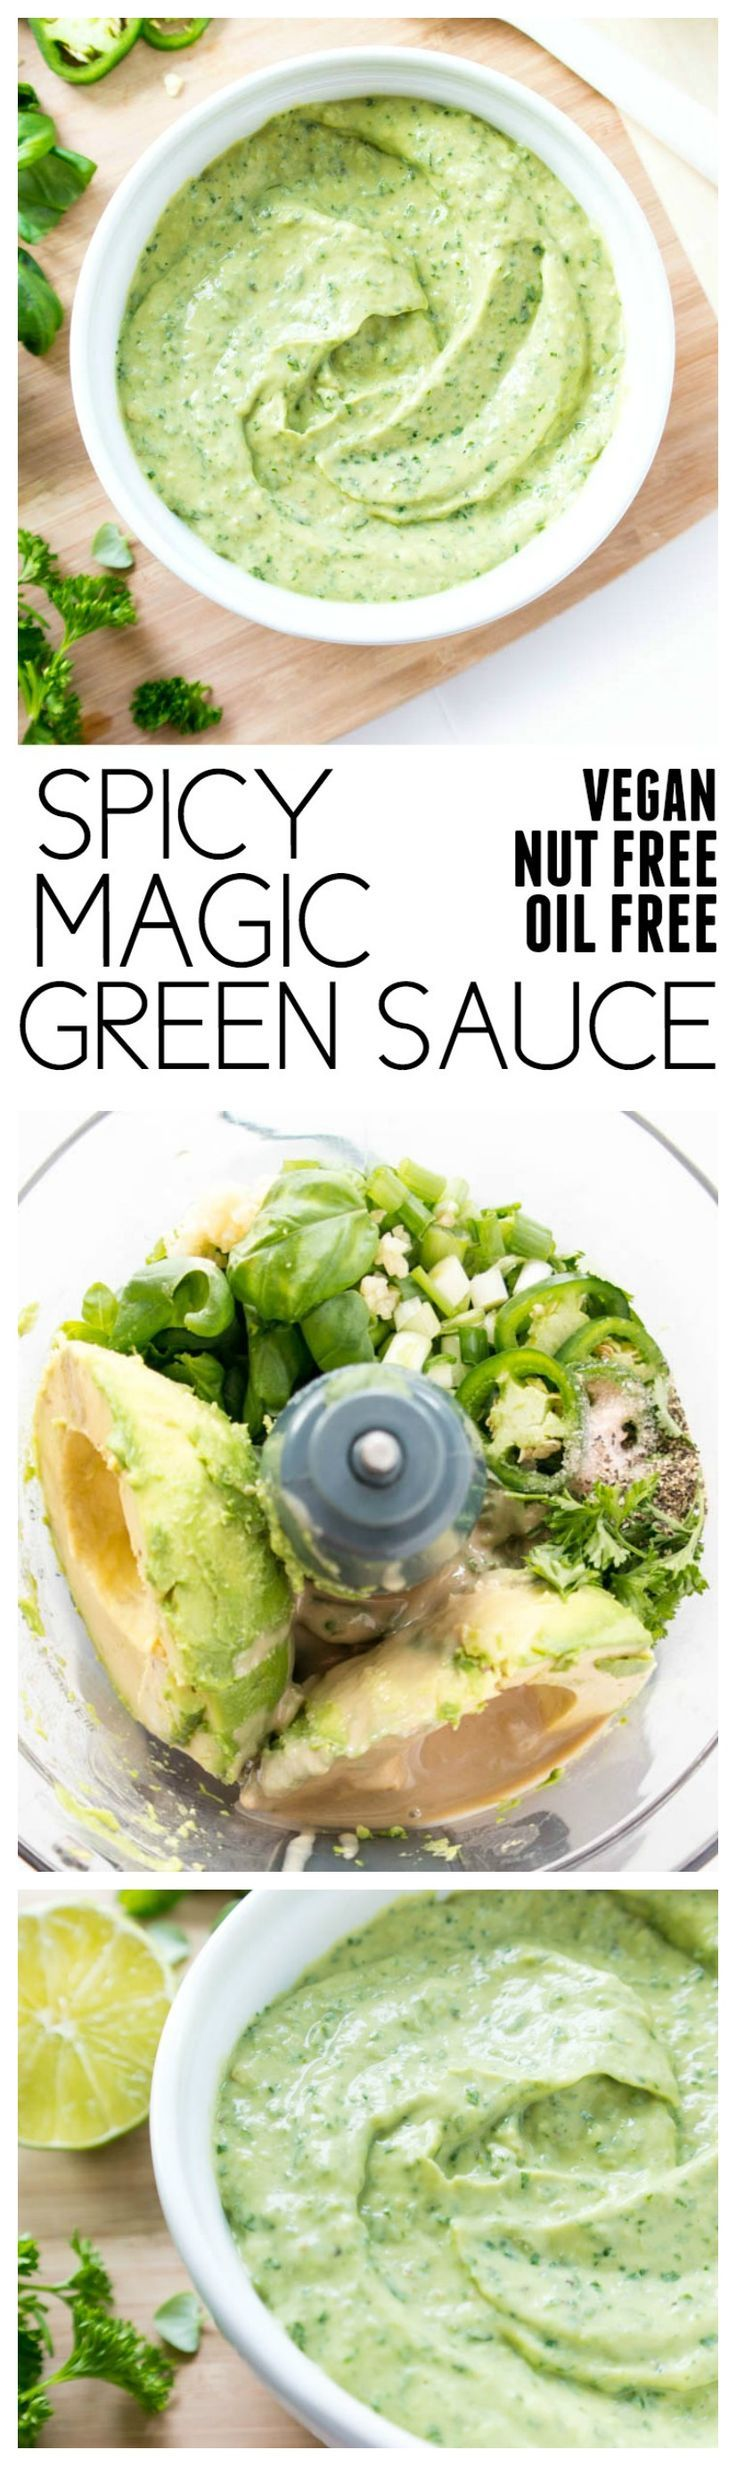 the most addicting sauce that you'll want to put on EVERYTHING! Spicy Magic Green Sauce. Vegan, Gluten Free, Oil Free, Nut Free. Complements all flavors, not just mexican flavors. Use as dipping sauce, sandwich spread, marinade, salad dressing, etc. #vega